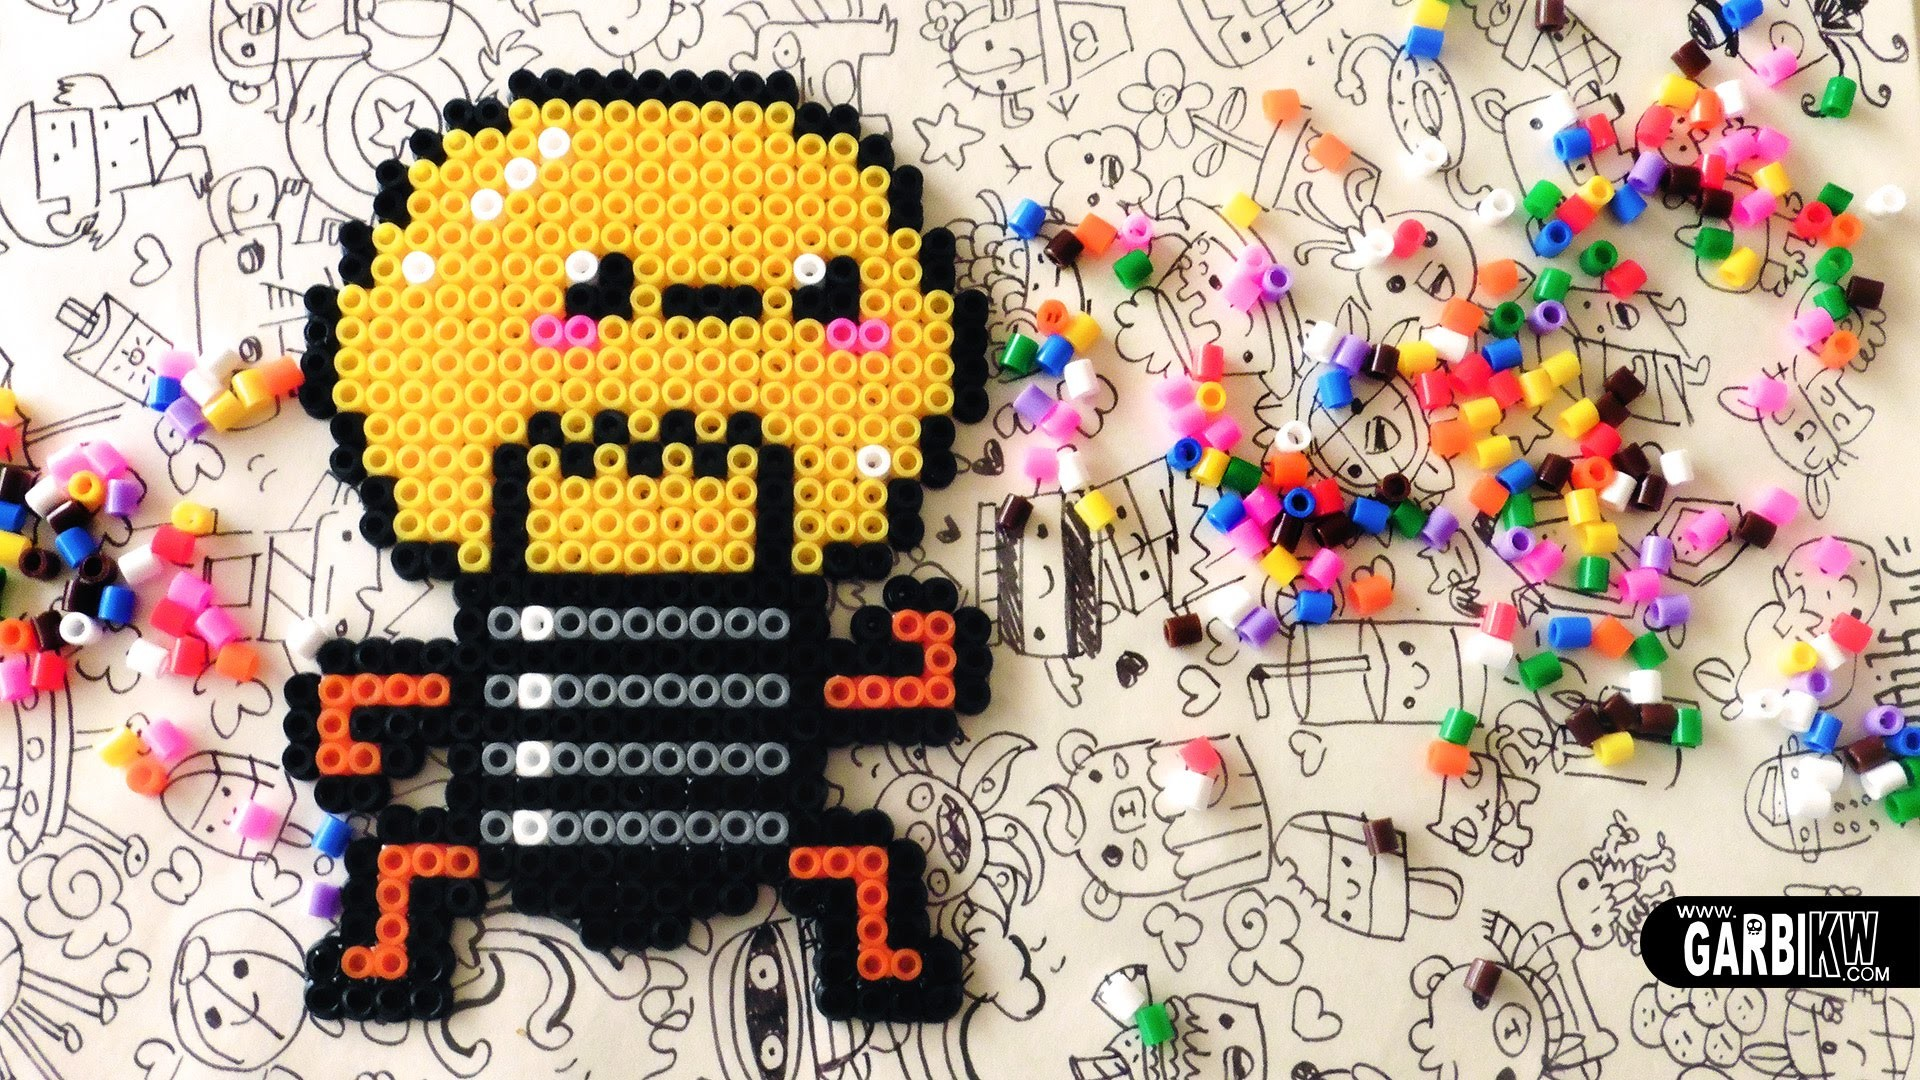 Kawaii Bulb - Hama Beads Designs by Garbi KW #pixelart